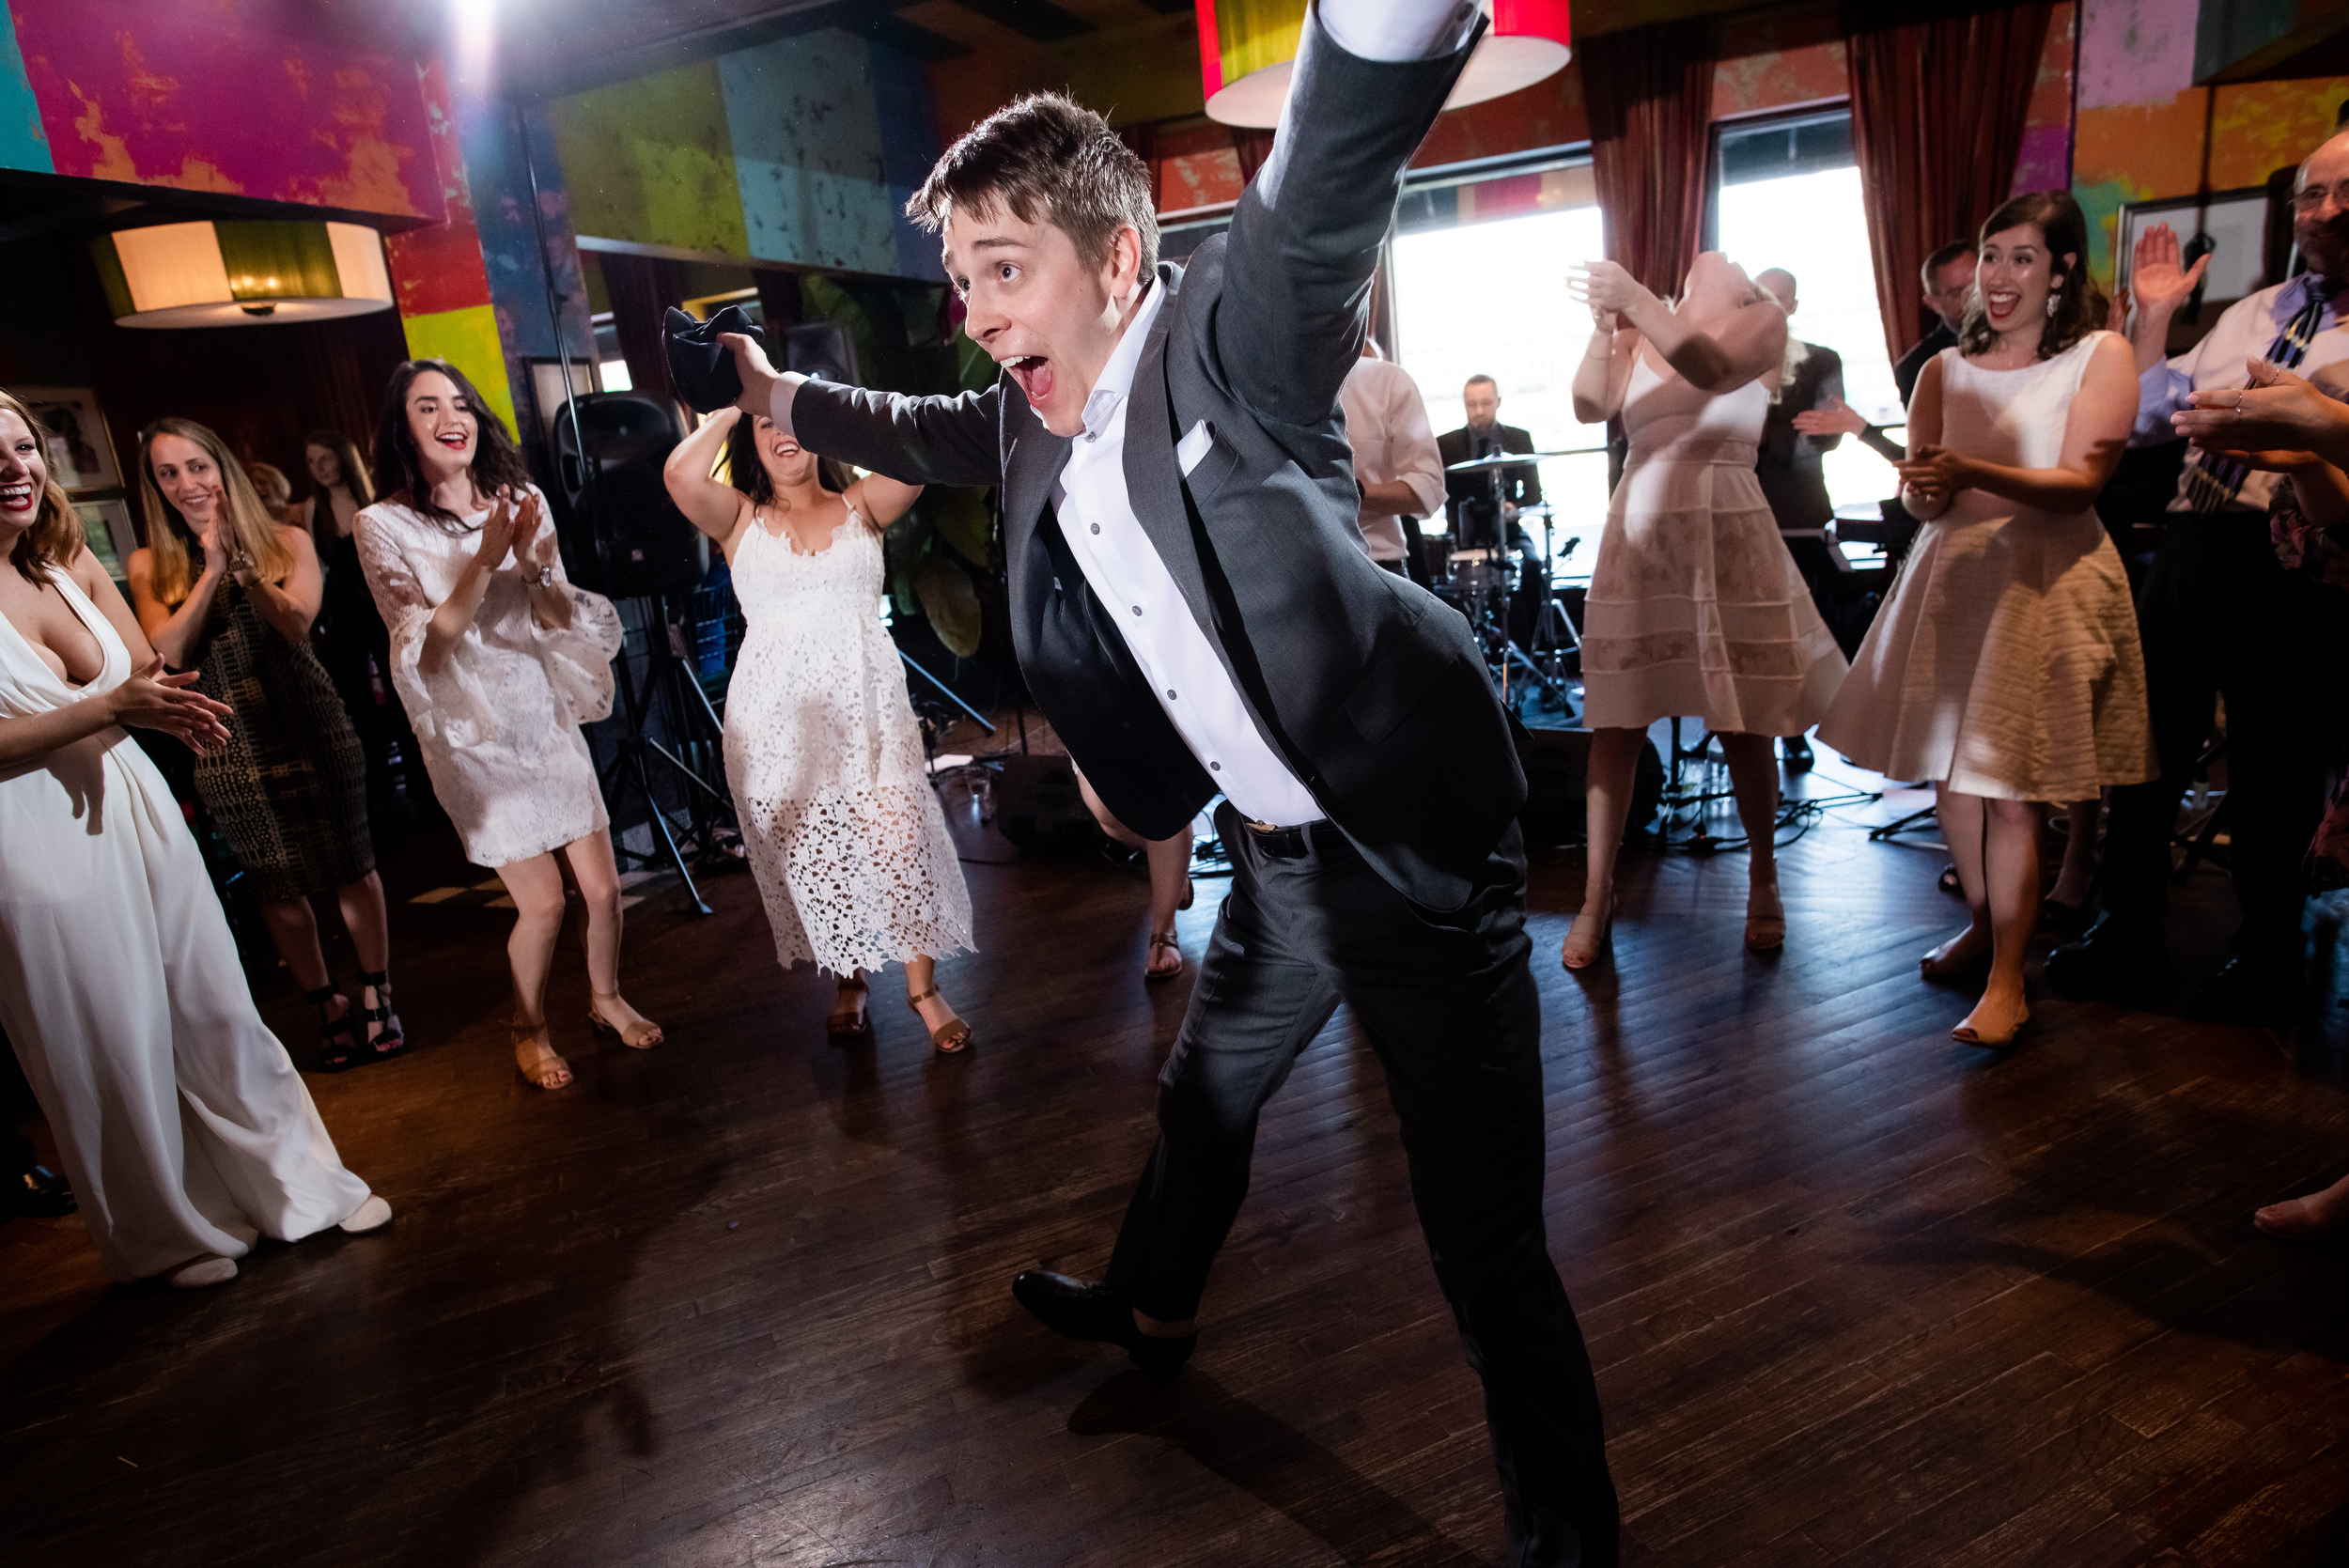 Carnivale Chicago wedding captured by J Brown Photography